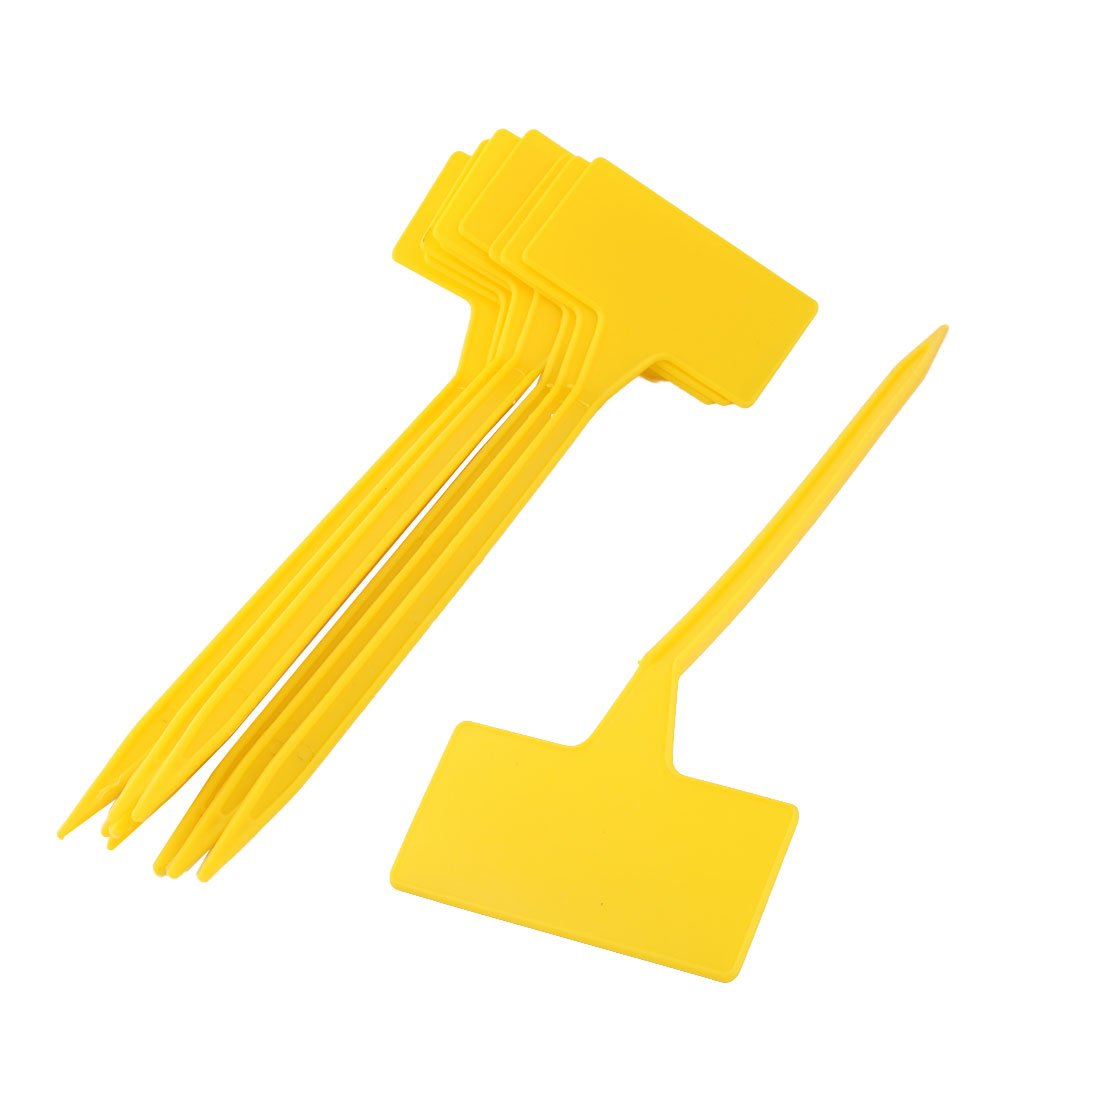 uxcell Plastic Home Outdoor Garden Plant Seed Name Marking Tag Label Marker 10 Pcs Yellow